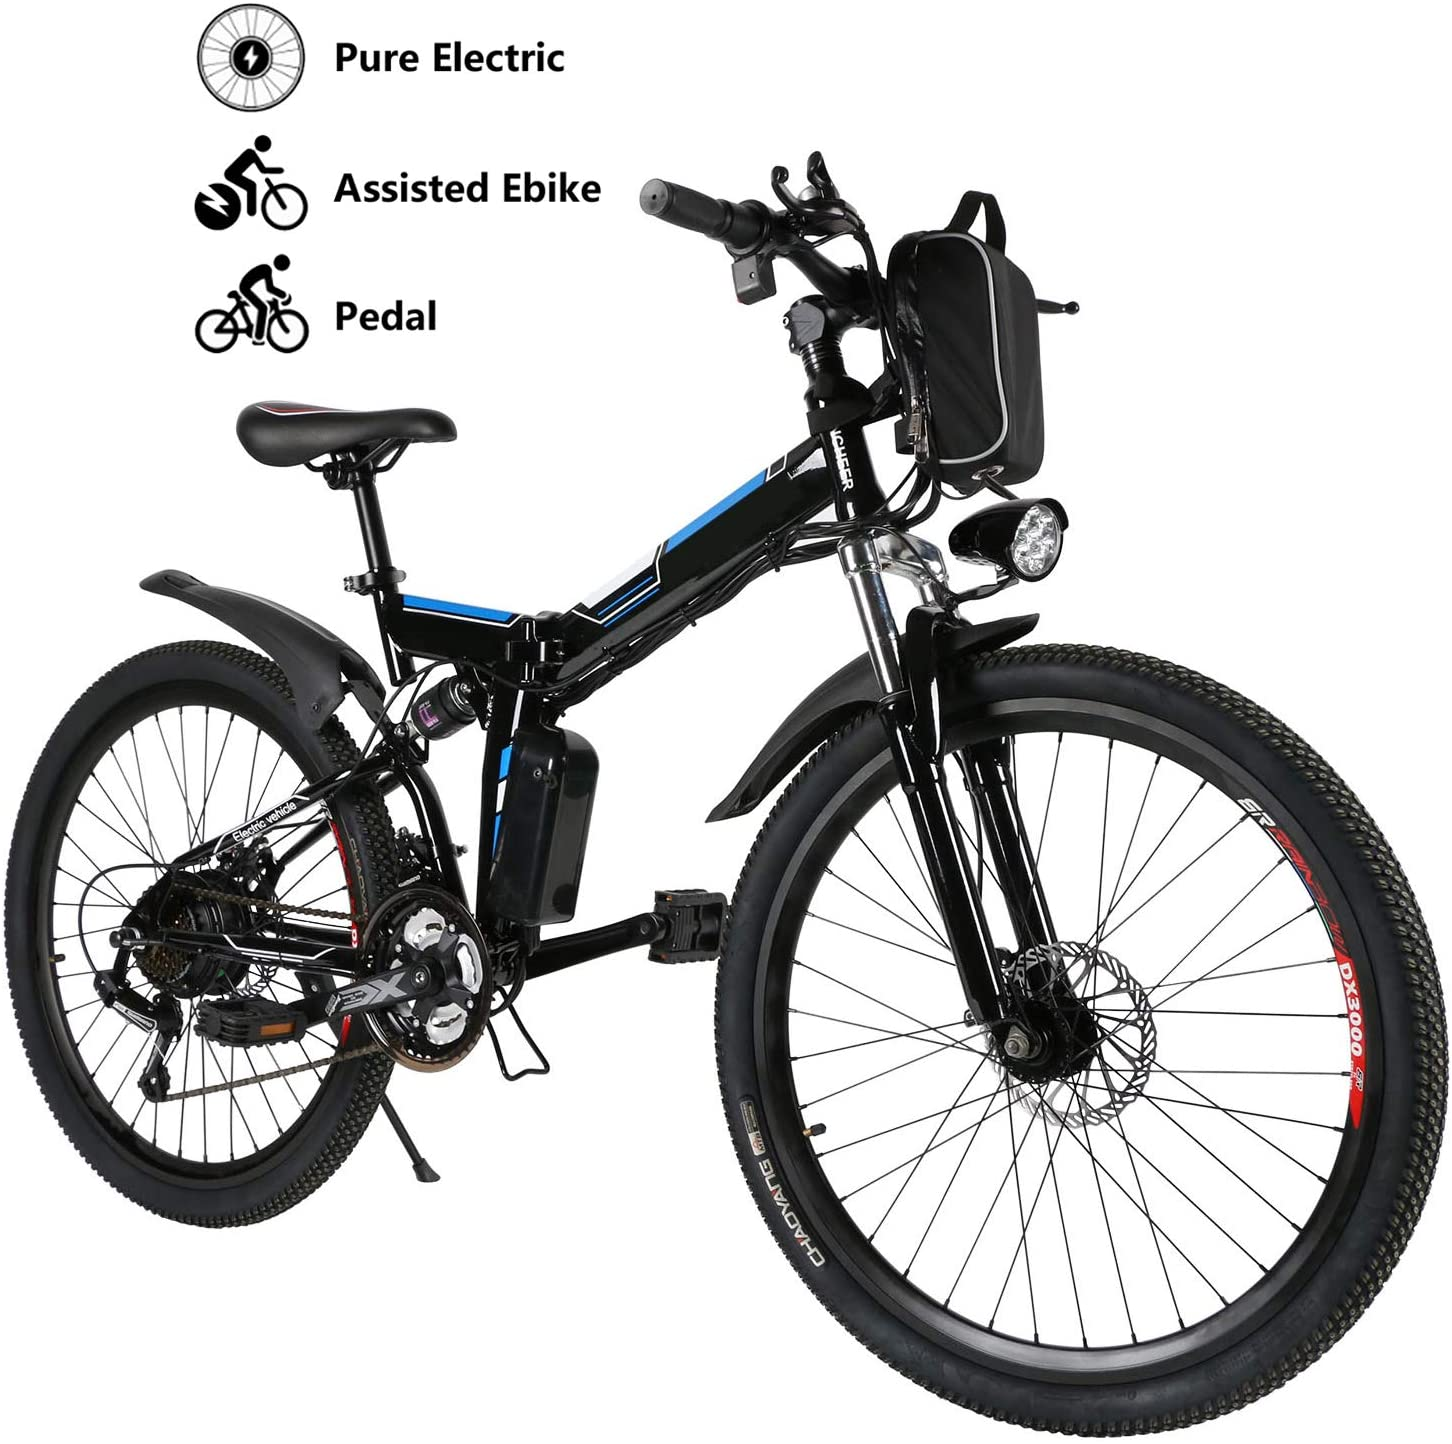 Yiilove 26'' Electric Bicycle Electric Mountain Bike for Adult with 36V Lithium-Ion Battery 250W Powerful Motor 21 Speed Ebike (Black Blue)